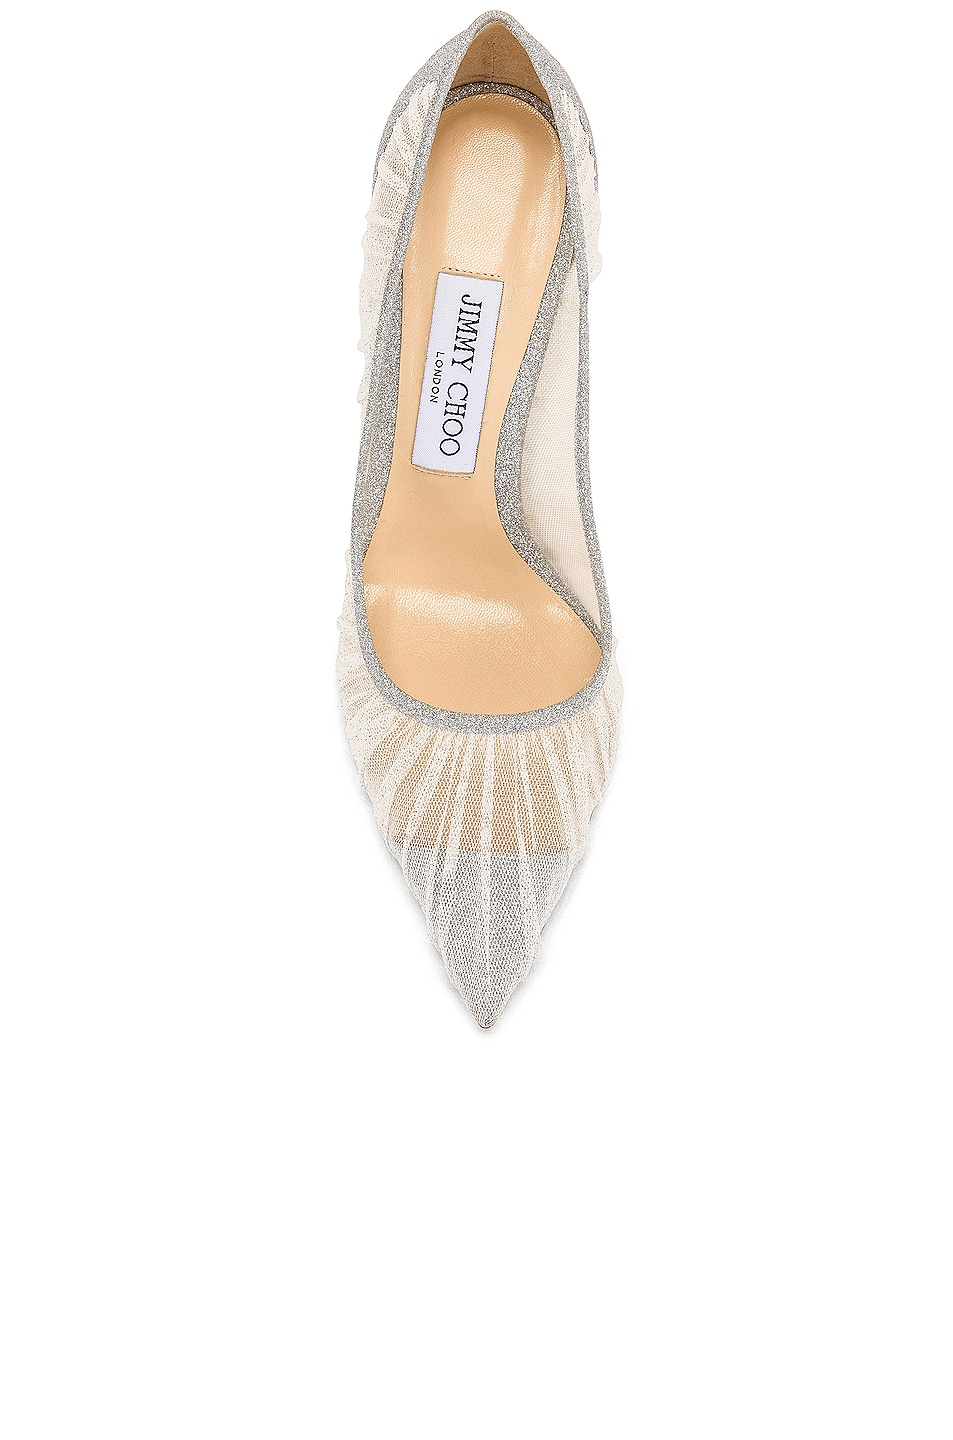 Image 4 of Jimmy Choo Love 100 Fine Glitter Heel in Ivory & Silver